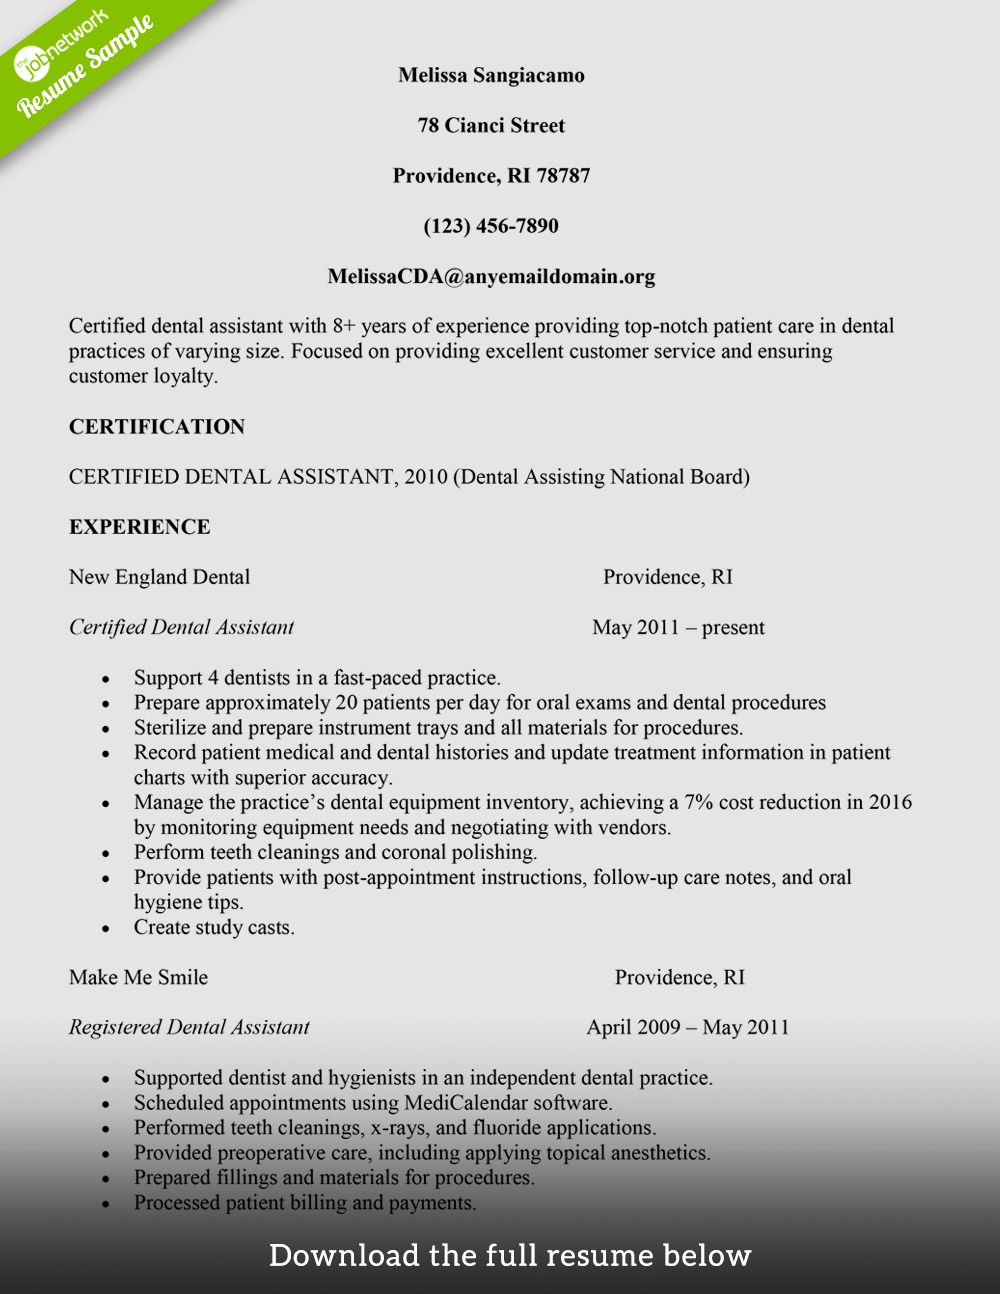 Dental assistant Resume Template New How to Build A Great Dental assistant Resume Examples